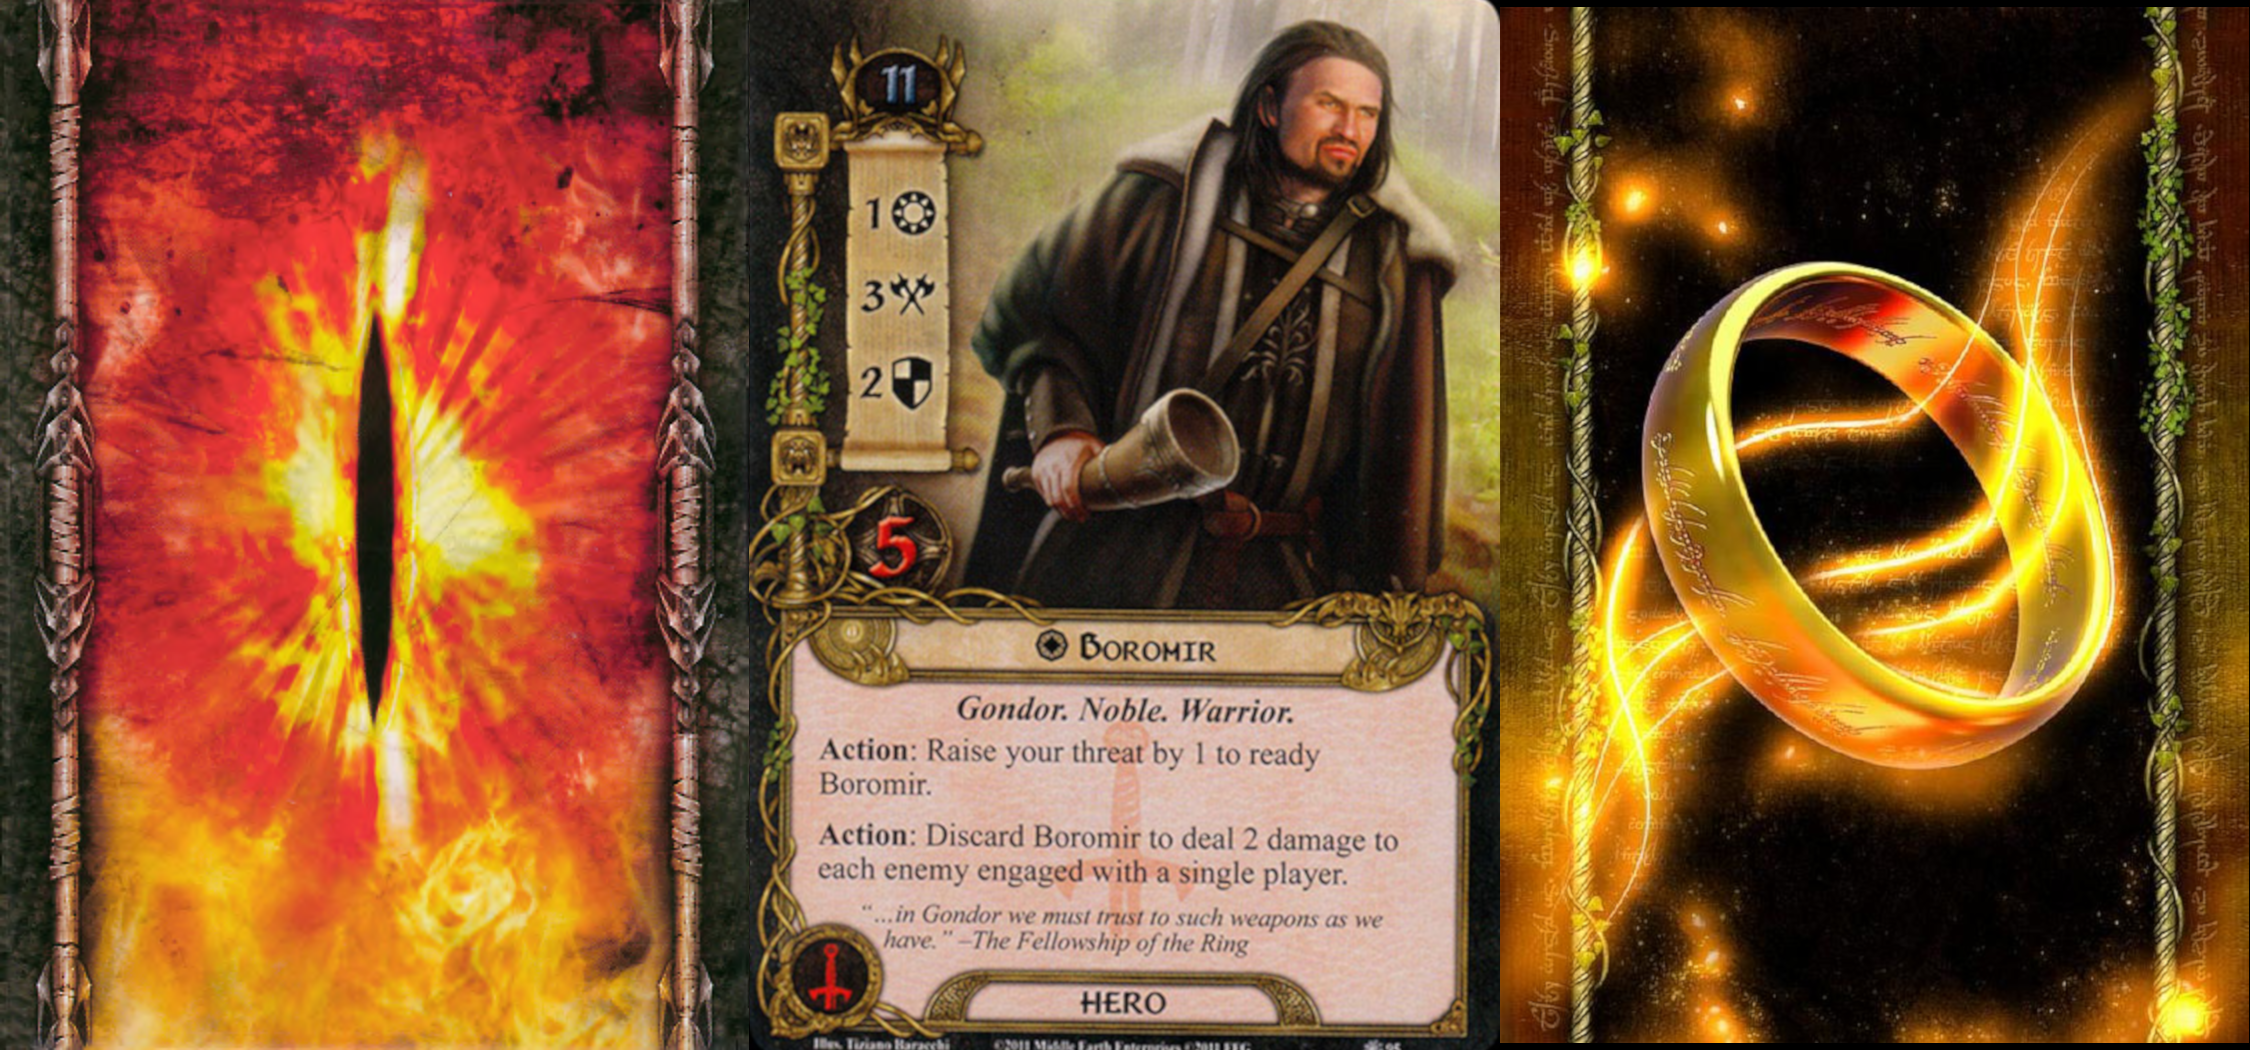 Cards from the Lord of the Rings Living Card Game